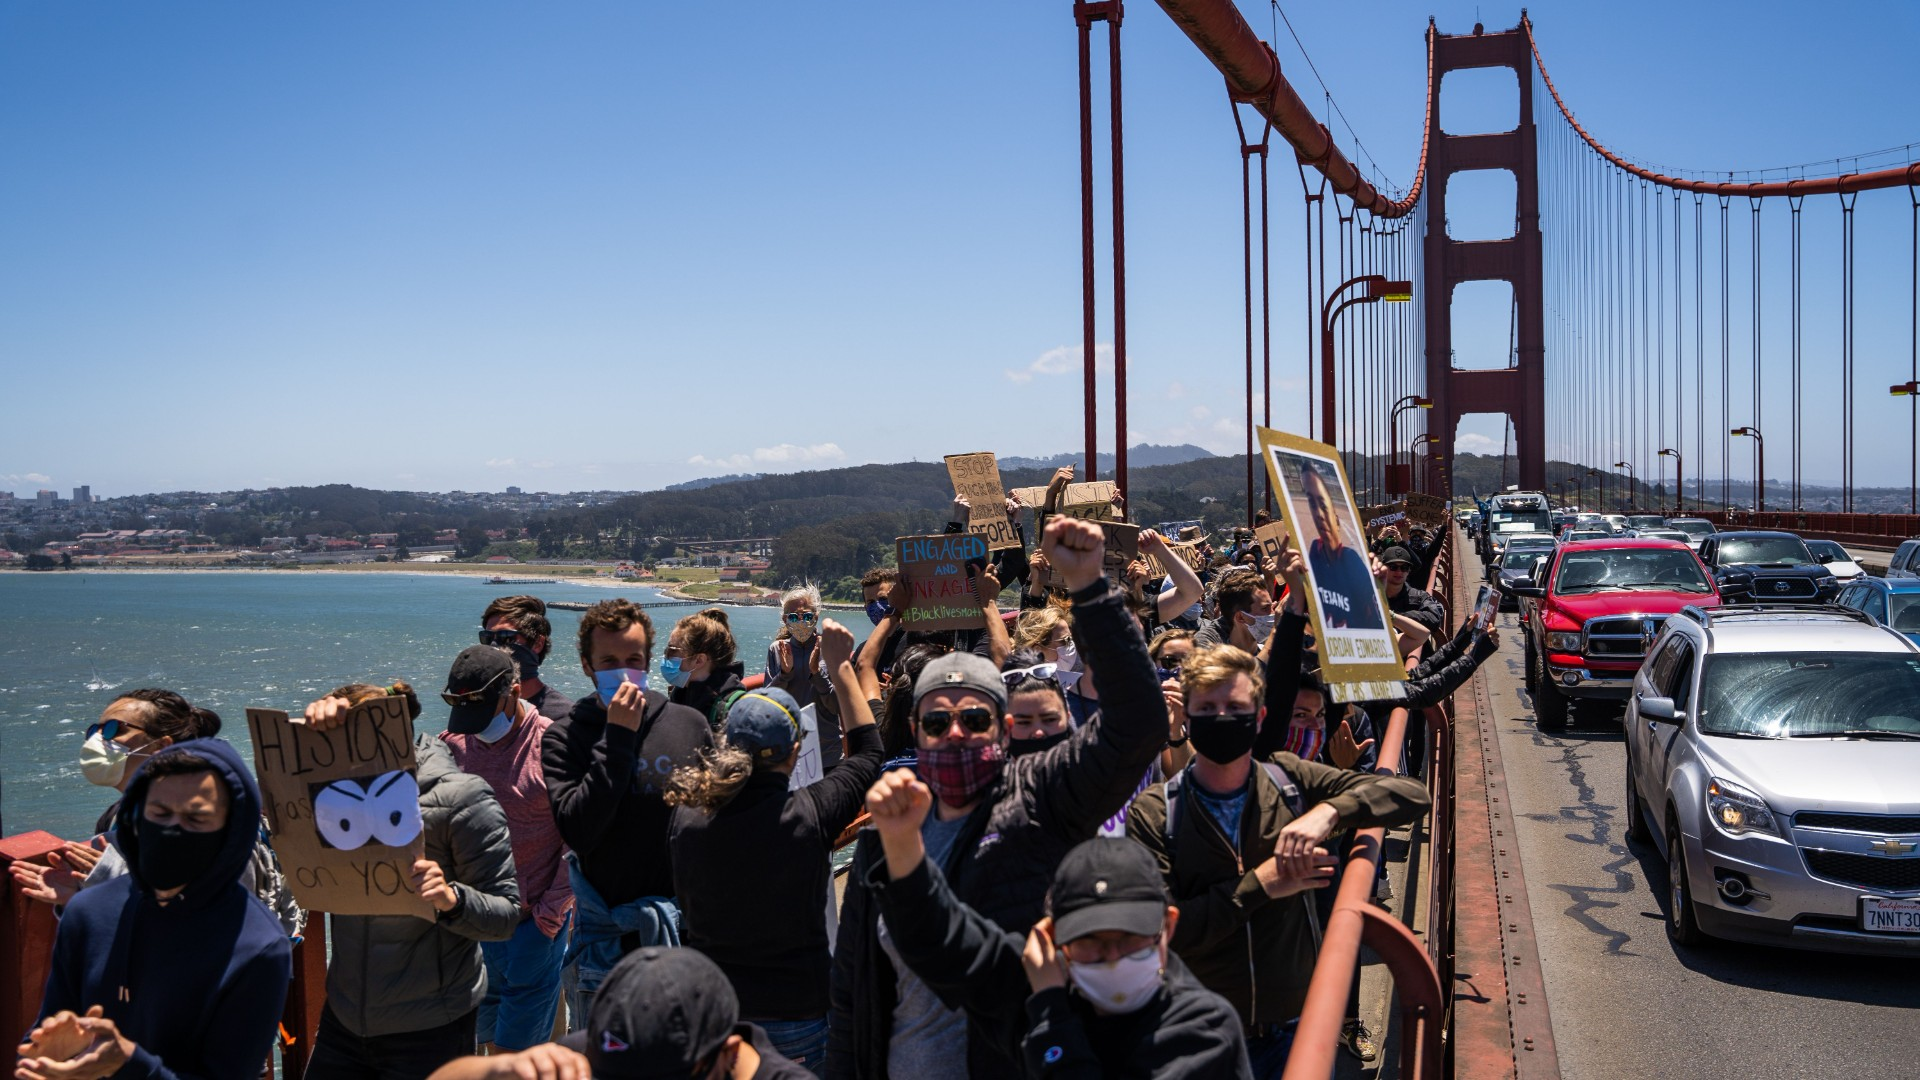 Protesters march across the Golden Gate Bridge during a demonstration against racism and police brutality in San Francisco, California, on June 6, 2020. (Vivian Lin/AFP/Getty Images)